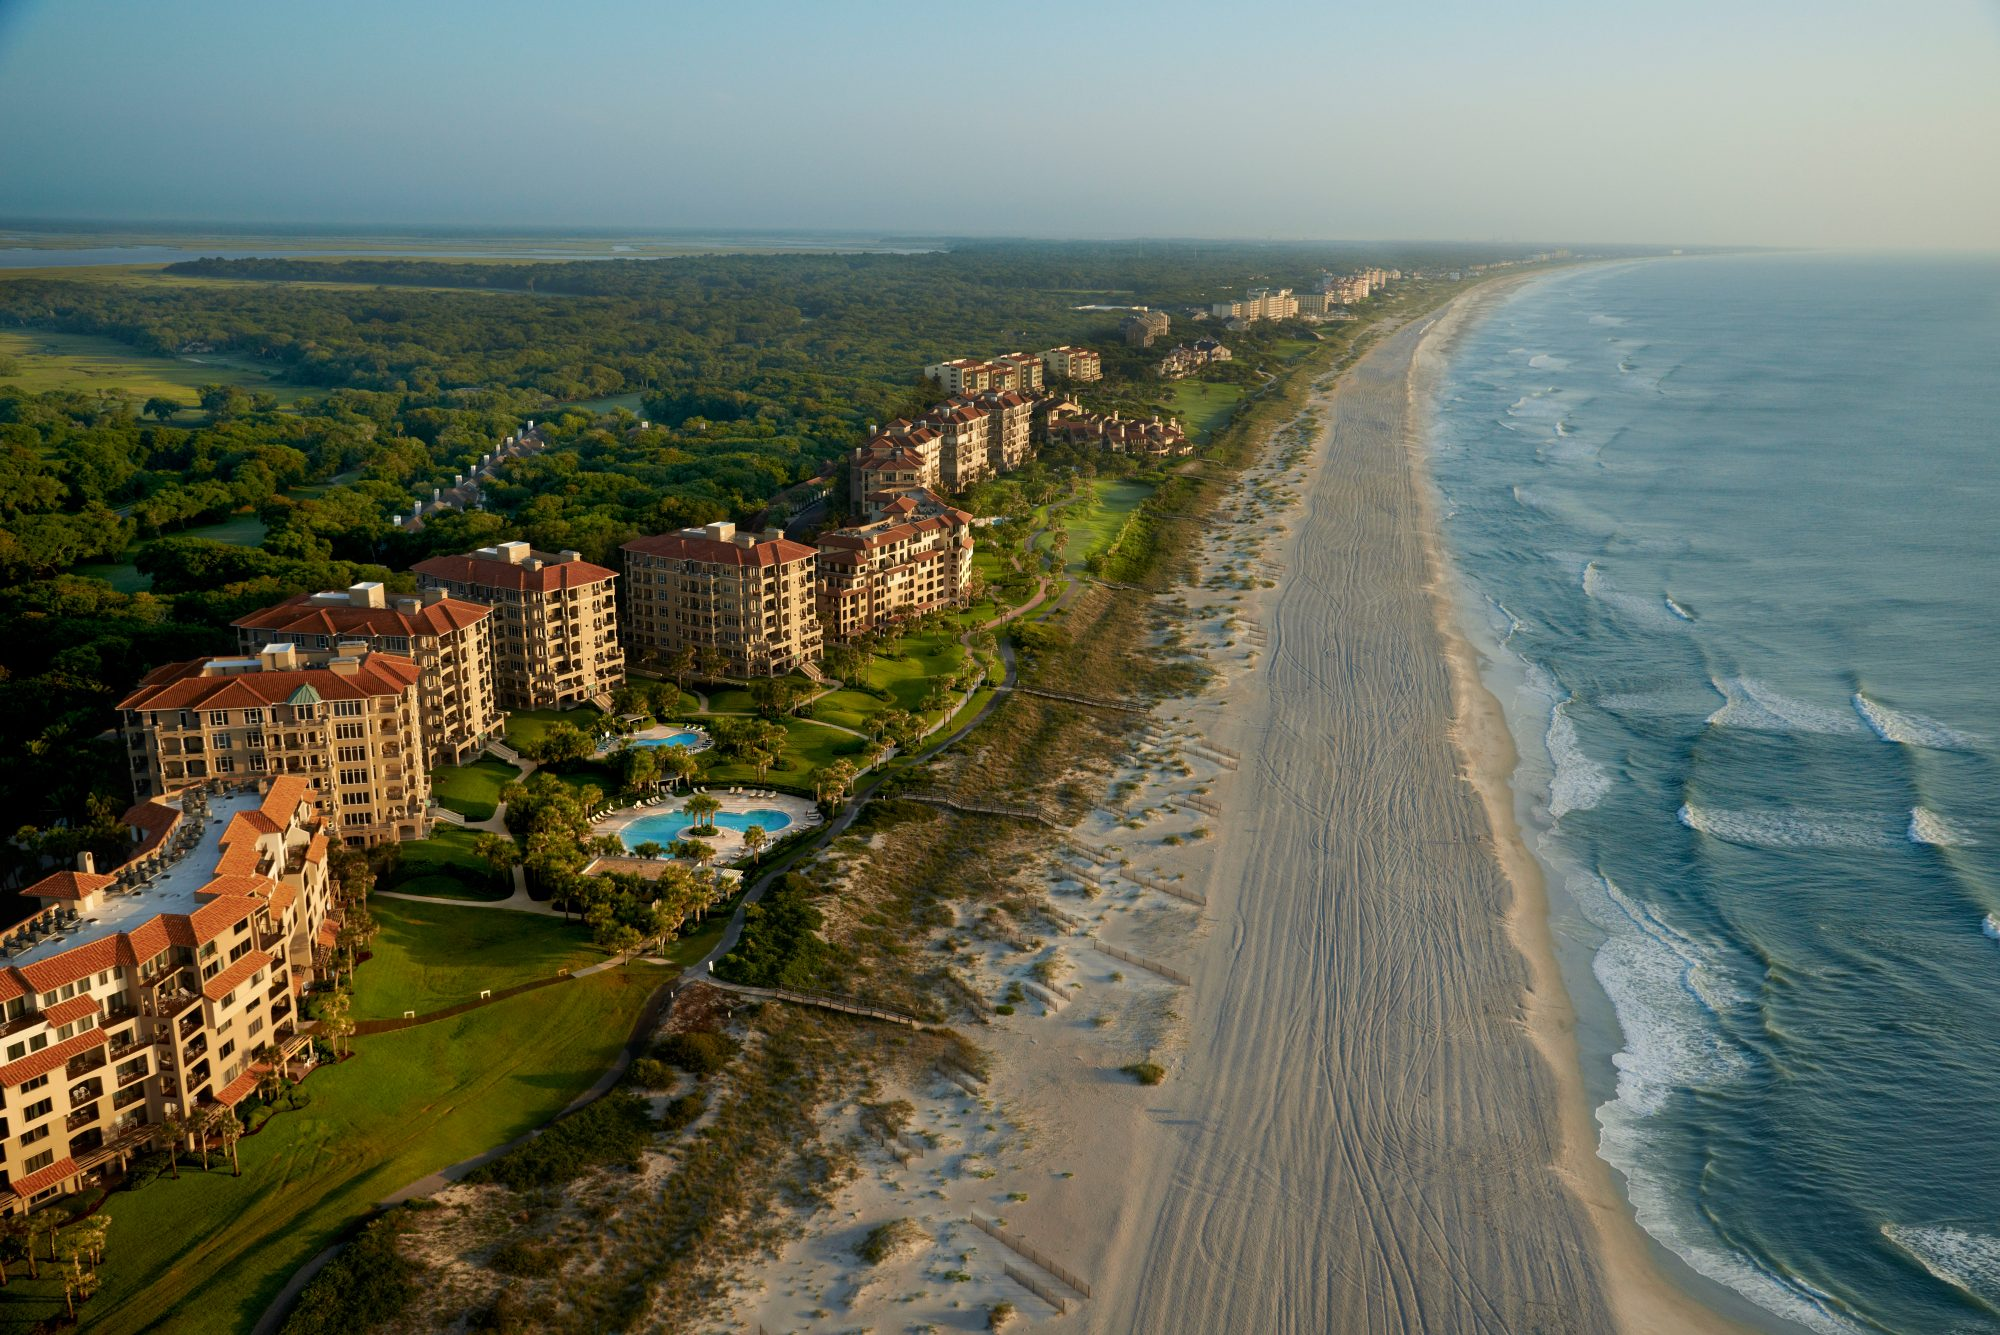 Featuring the largest beach on our list, Omni Amelia Island Plantation Resort sports a three-and-a-half-mile private stretch of sand at the tip of Florida's northernmost island. Famous for its Southern charm and natural beauty, Amelia Island is a playground for nature lovers, and this hotel showcases the best of the area. Go fishing, kayaking, boating, swimming, shopping, golfing, and more. And make sure you score a golf cart because it's the best and most scenic way to cruise around this expansive 1,350-acre resort. 39 Beach Lagoon Road, Fernandina Beach, FL 32034